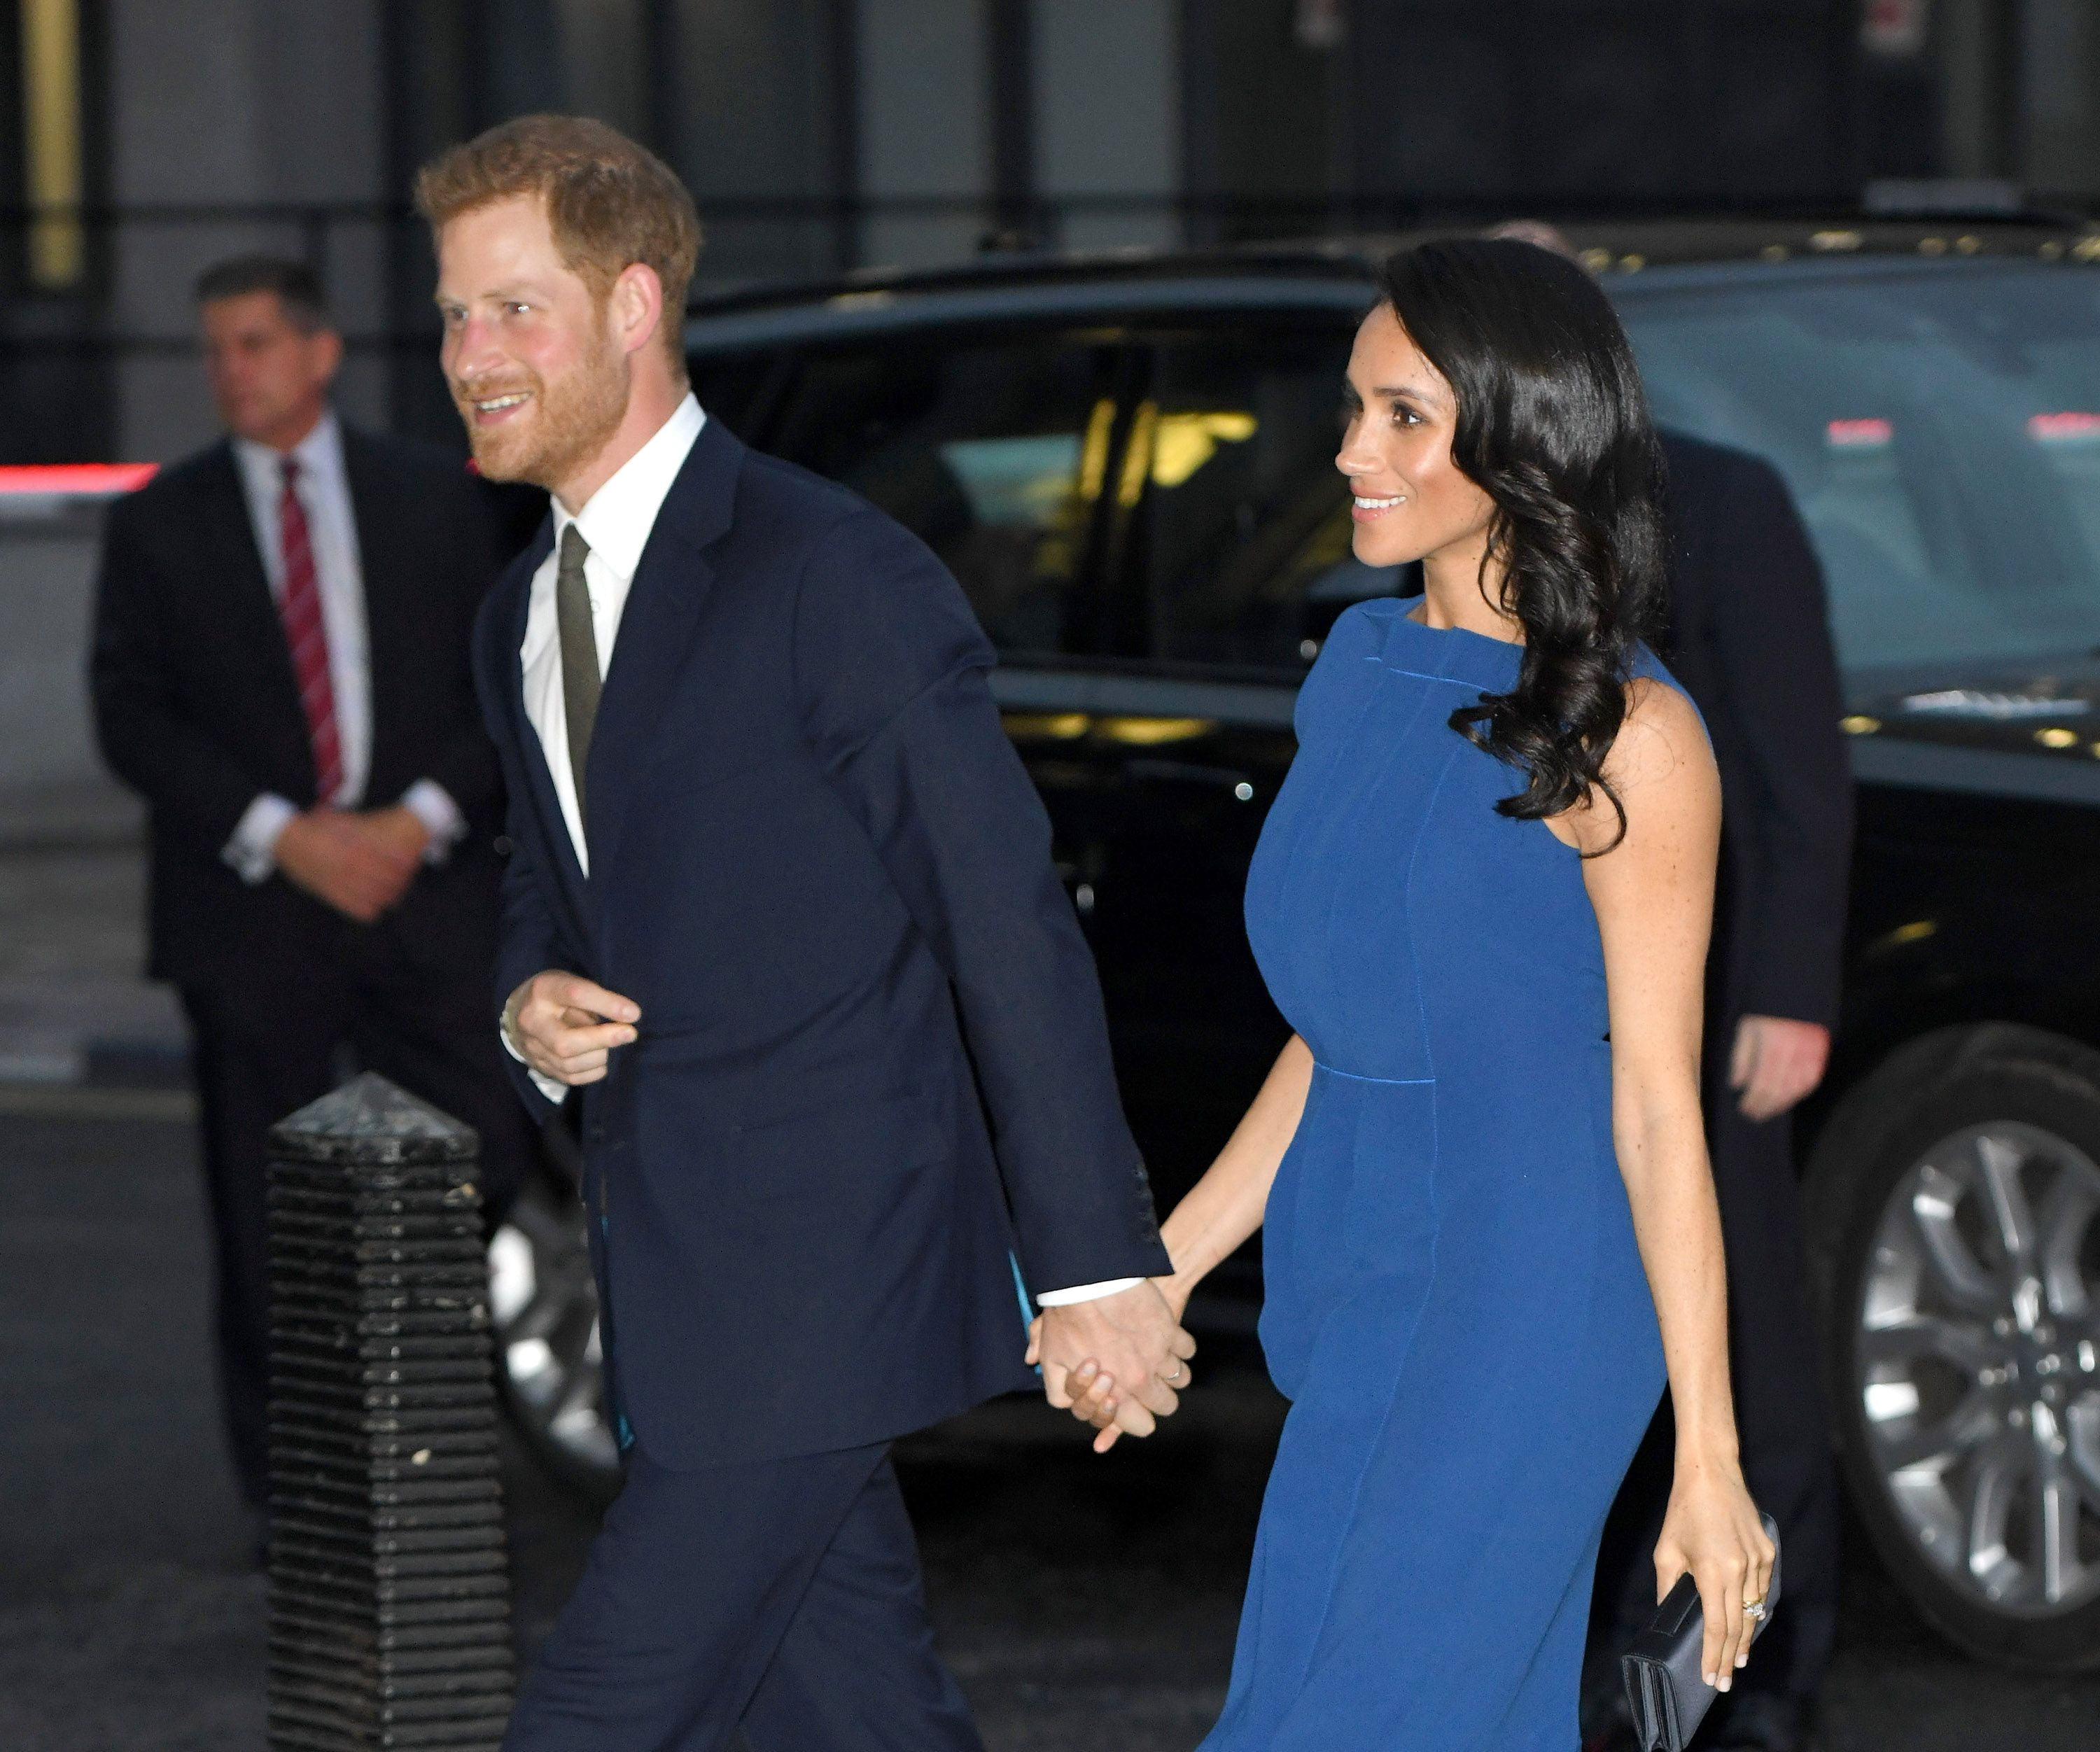 Is Meghan Markle pregnant